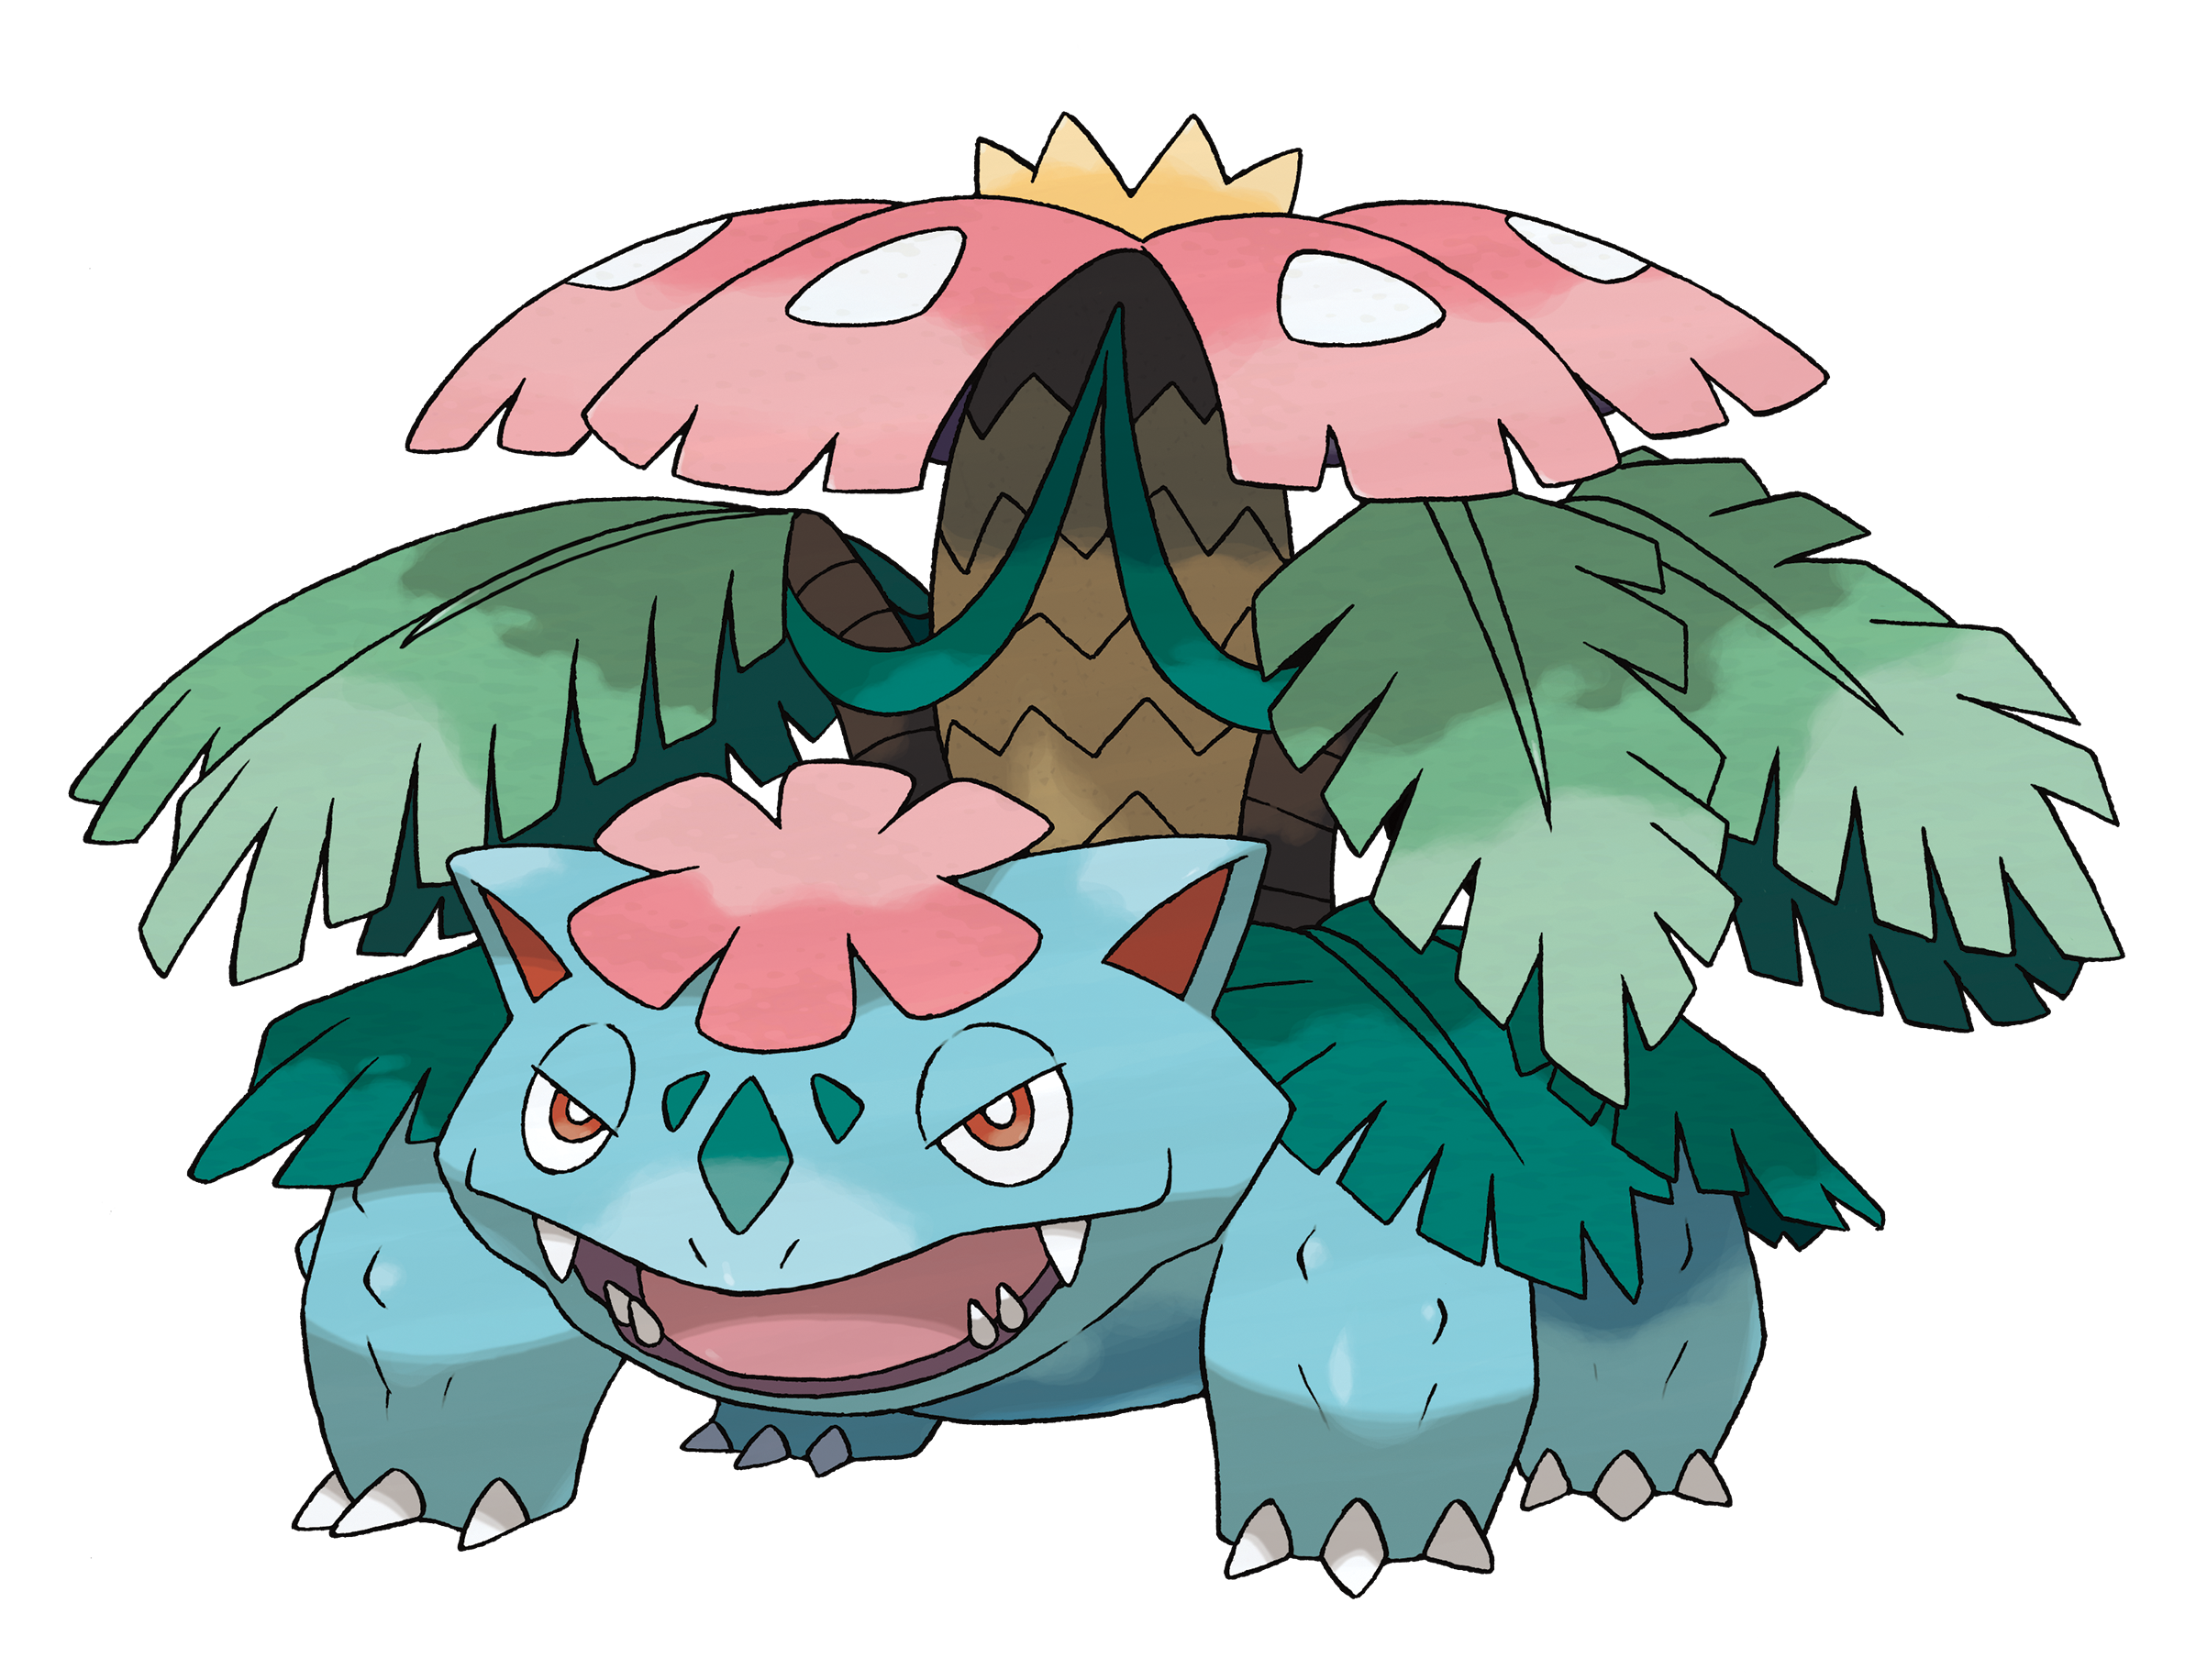 http://media-cerulean.cursecdn.com/attachments/5/860/mega_venusaur.png